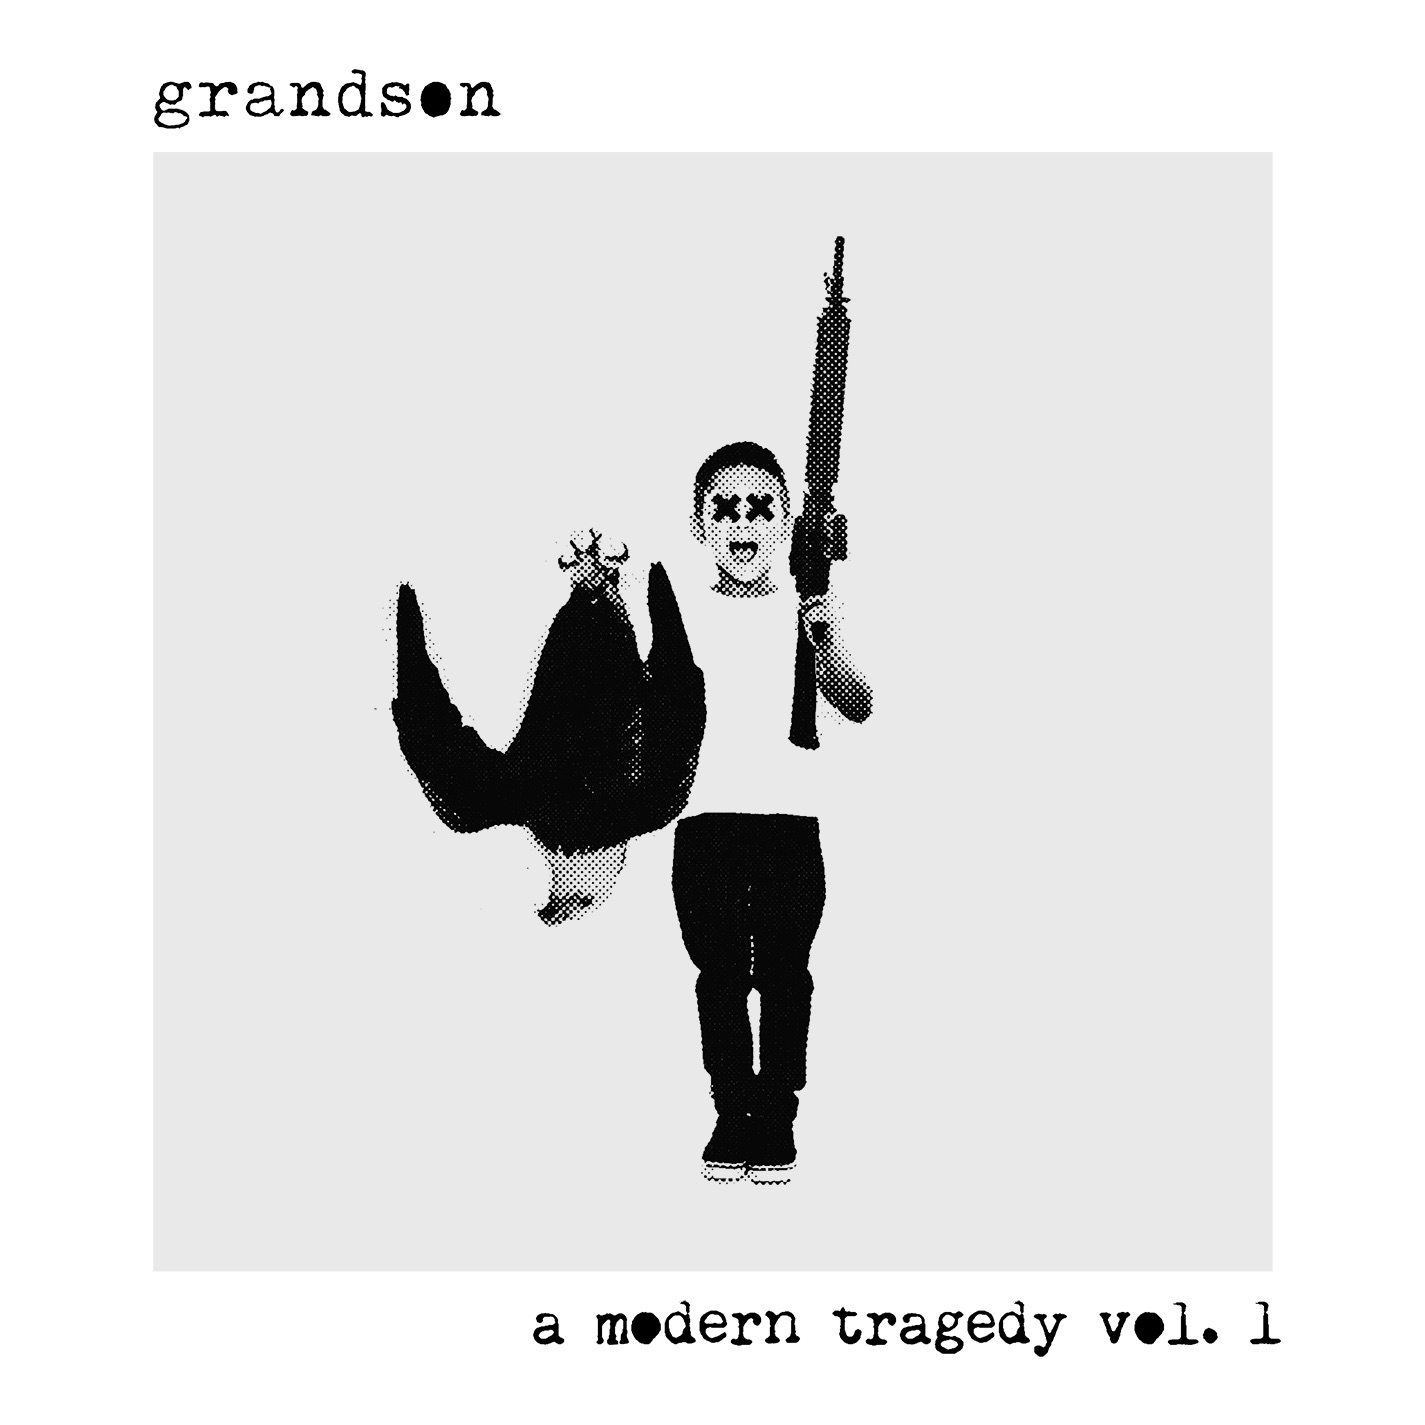 Blood // Water by grandson